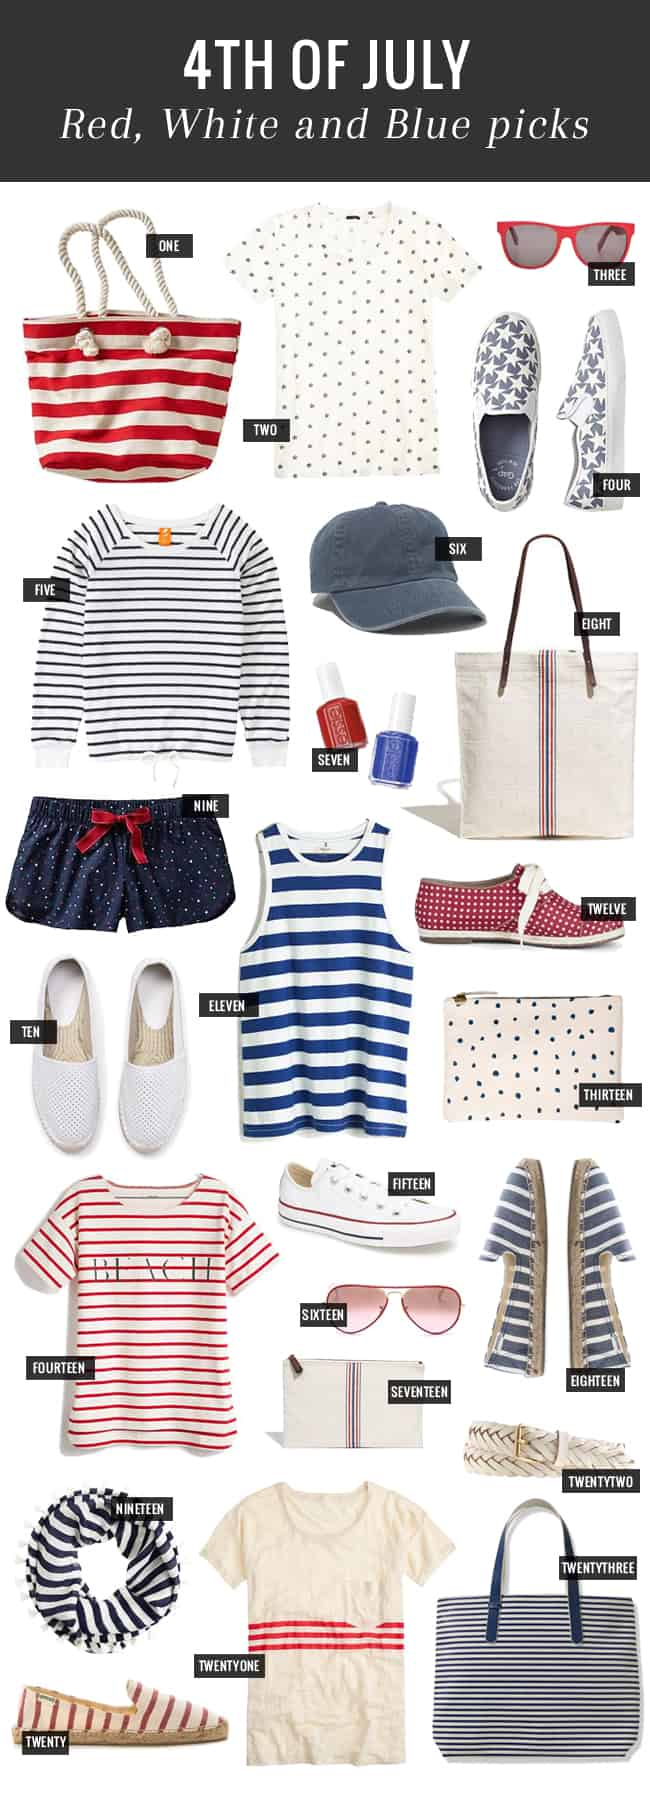 23 Red, White & Blue Buys for 4th of July | Hello Natural